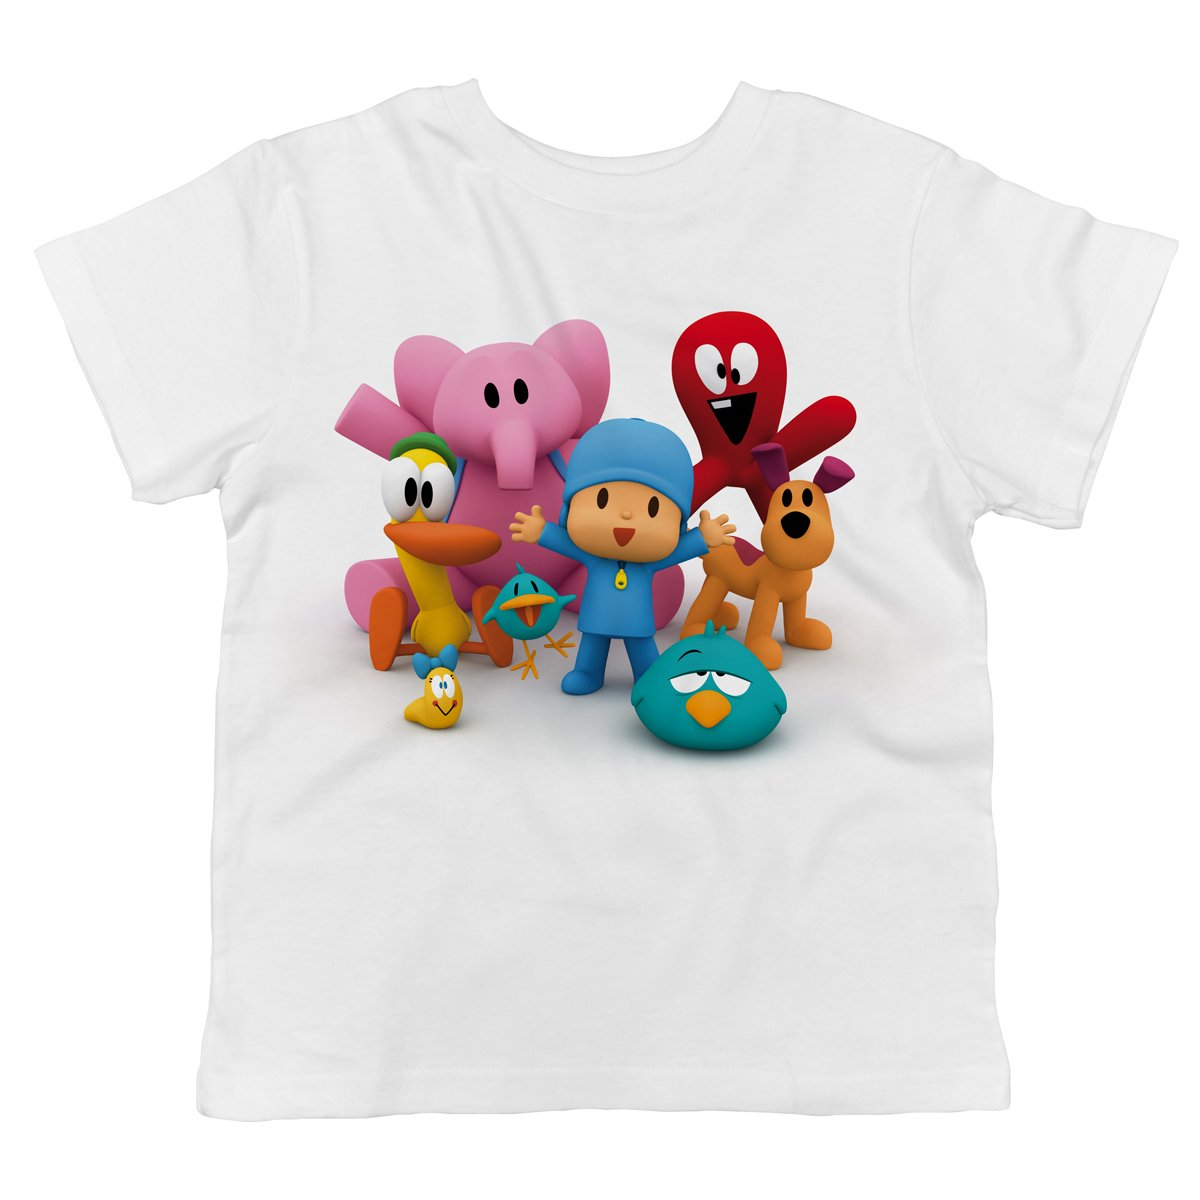 POCOYO - Pocoyo and All of His Friends Together 100% Cotton Toddler T-shirt 107545